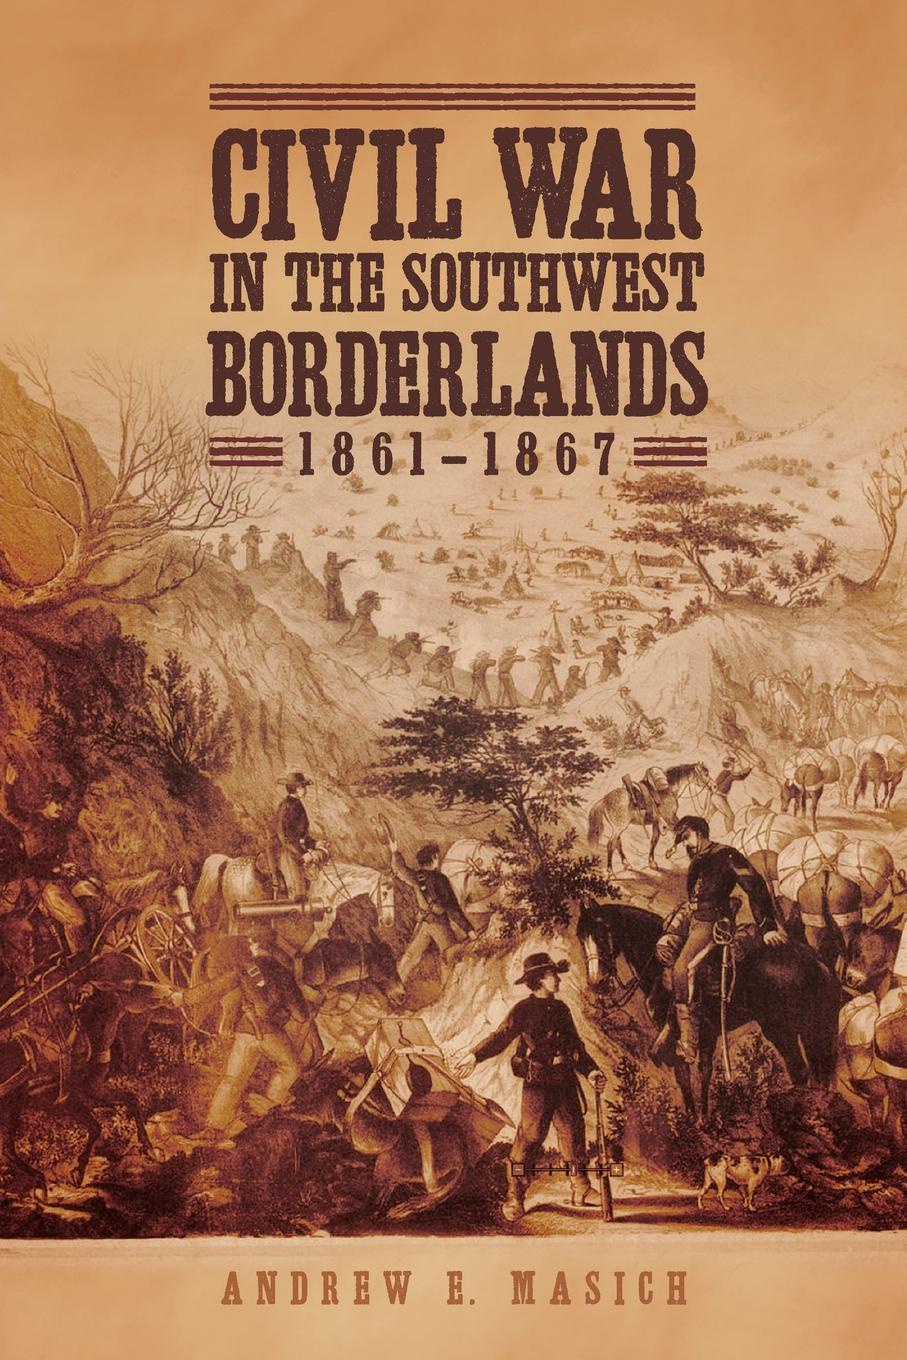 Andrew E. Masich. Civil War in the Southwest Borderlands, 1861-1867